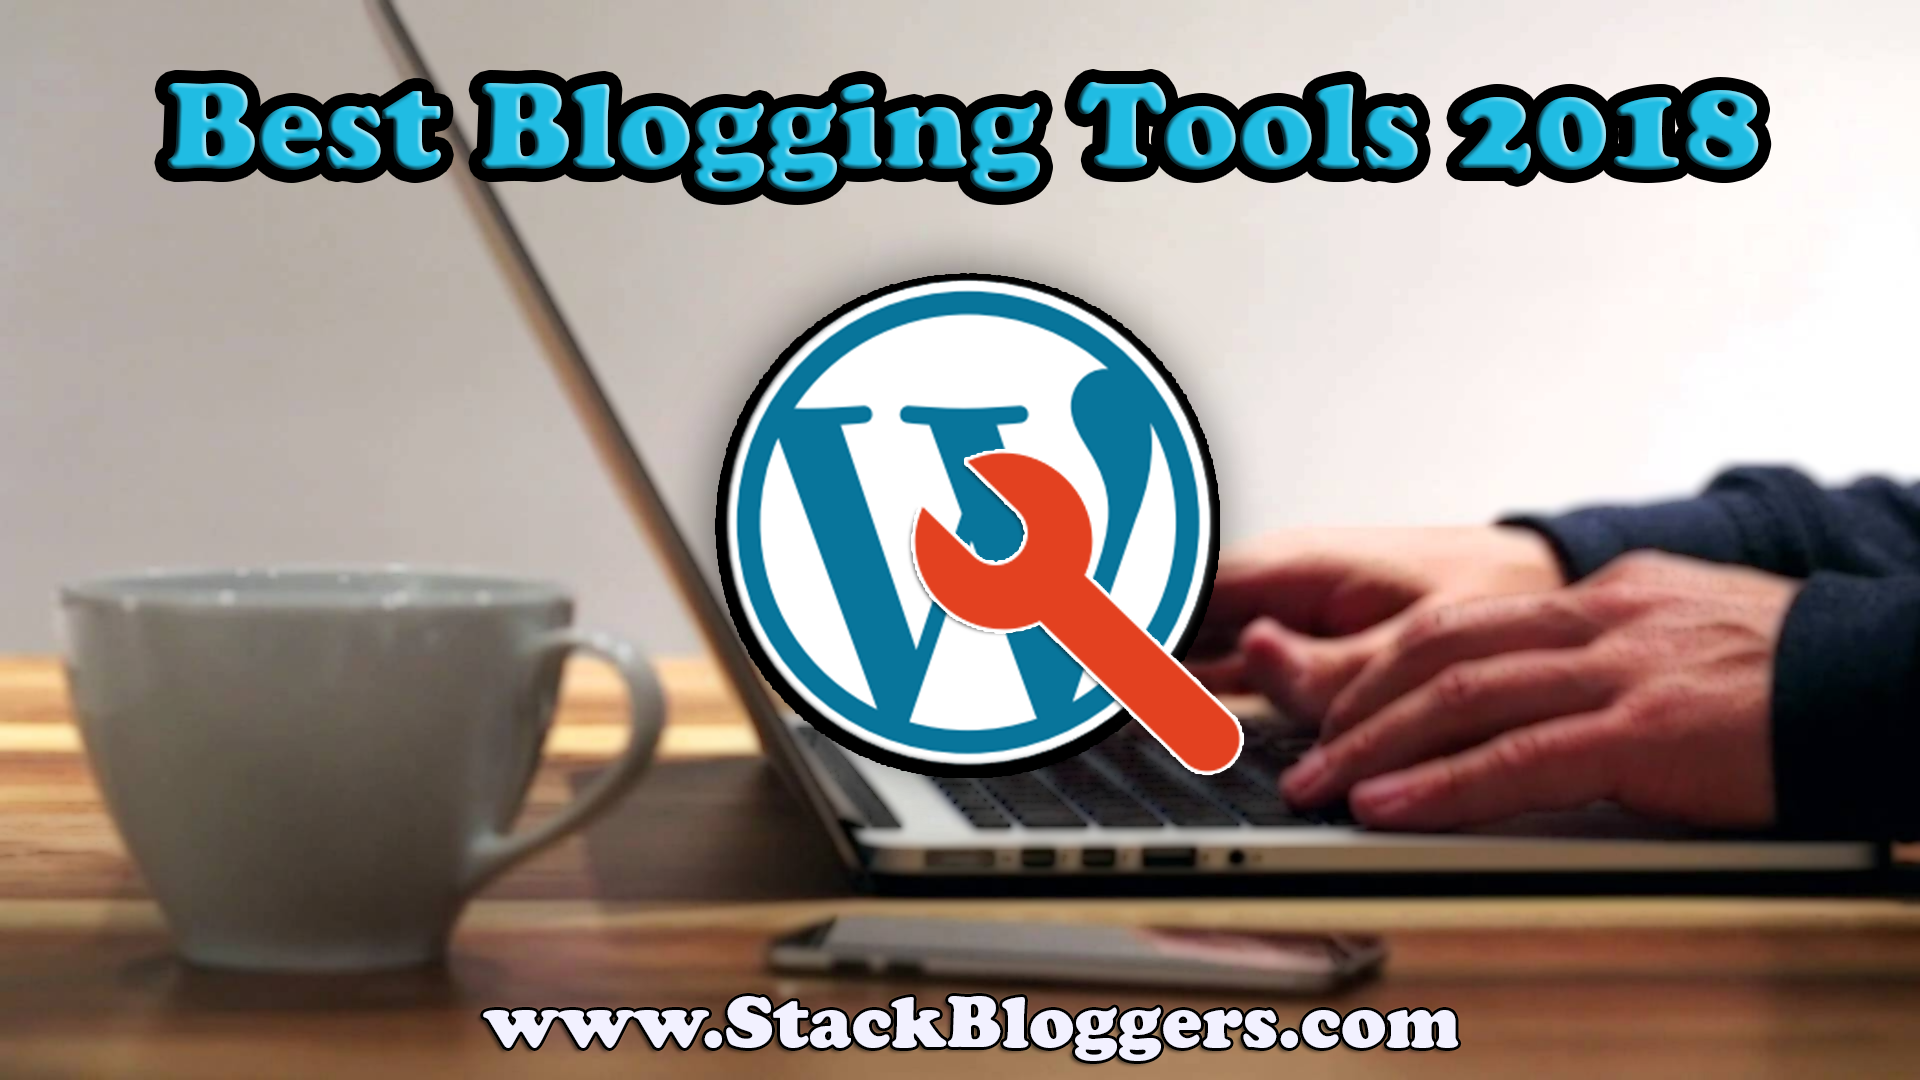 Best Blogging Tools 2018